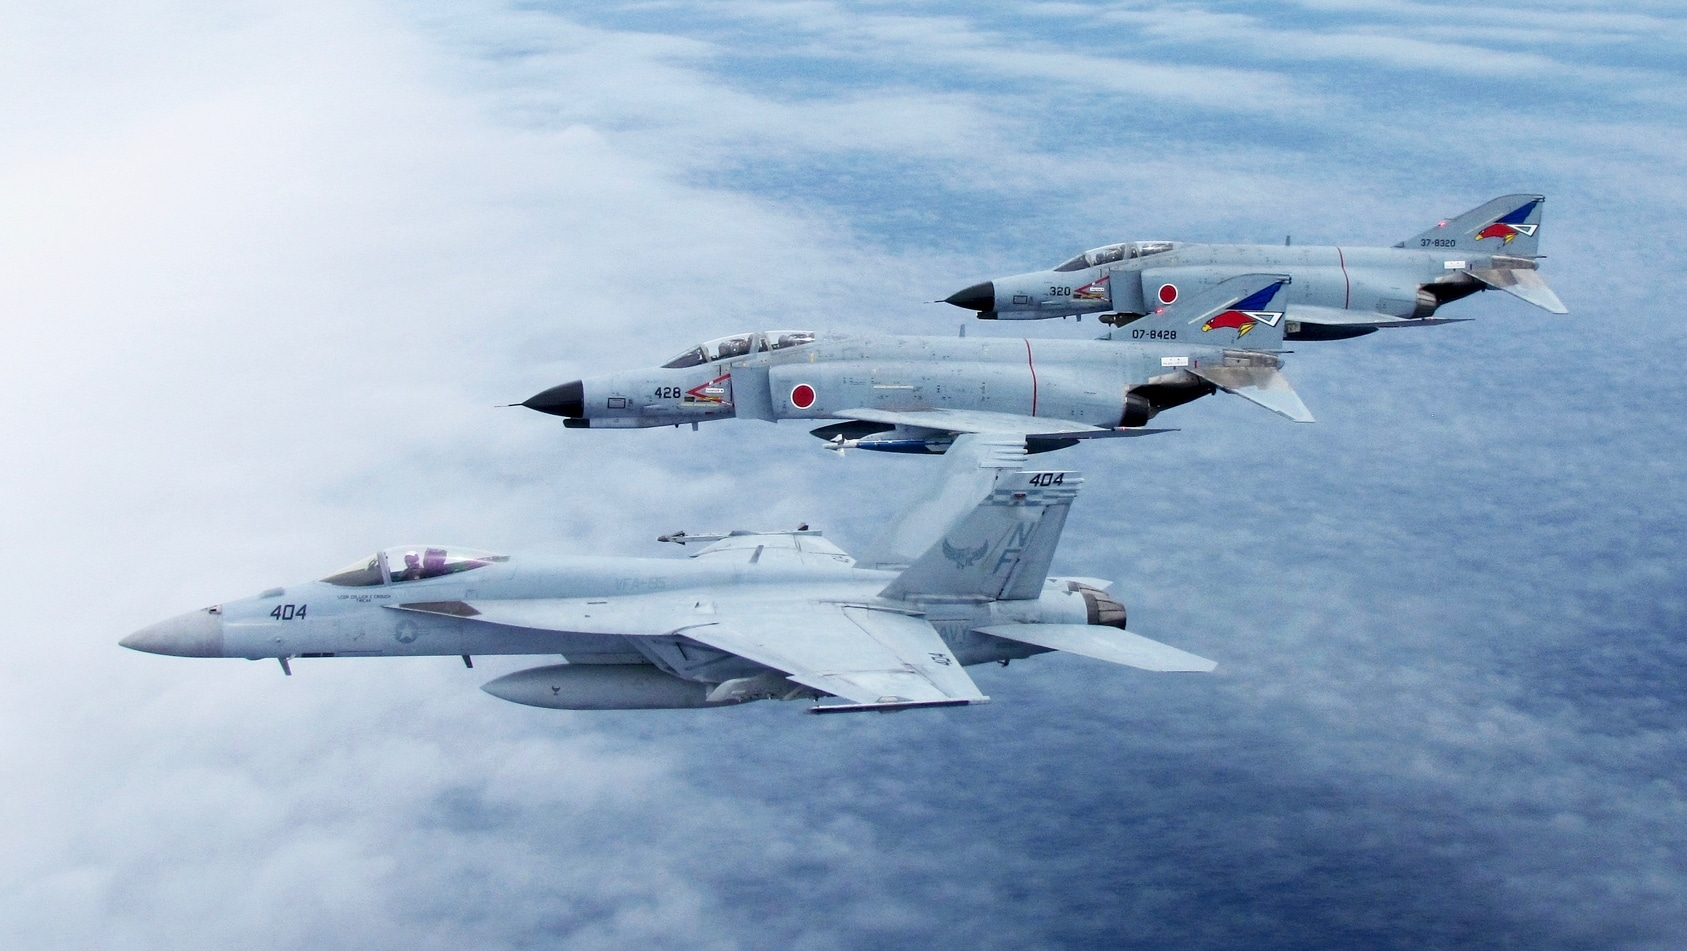 Modern Day Phantom F 4 Phantoms Still Plying The Skies In